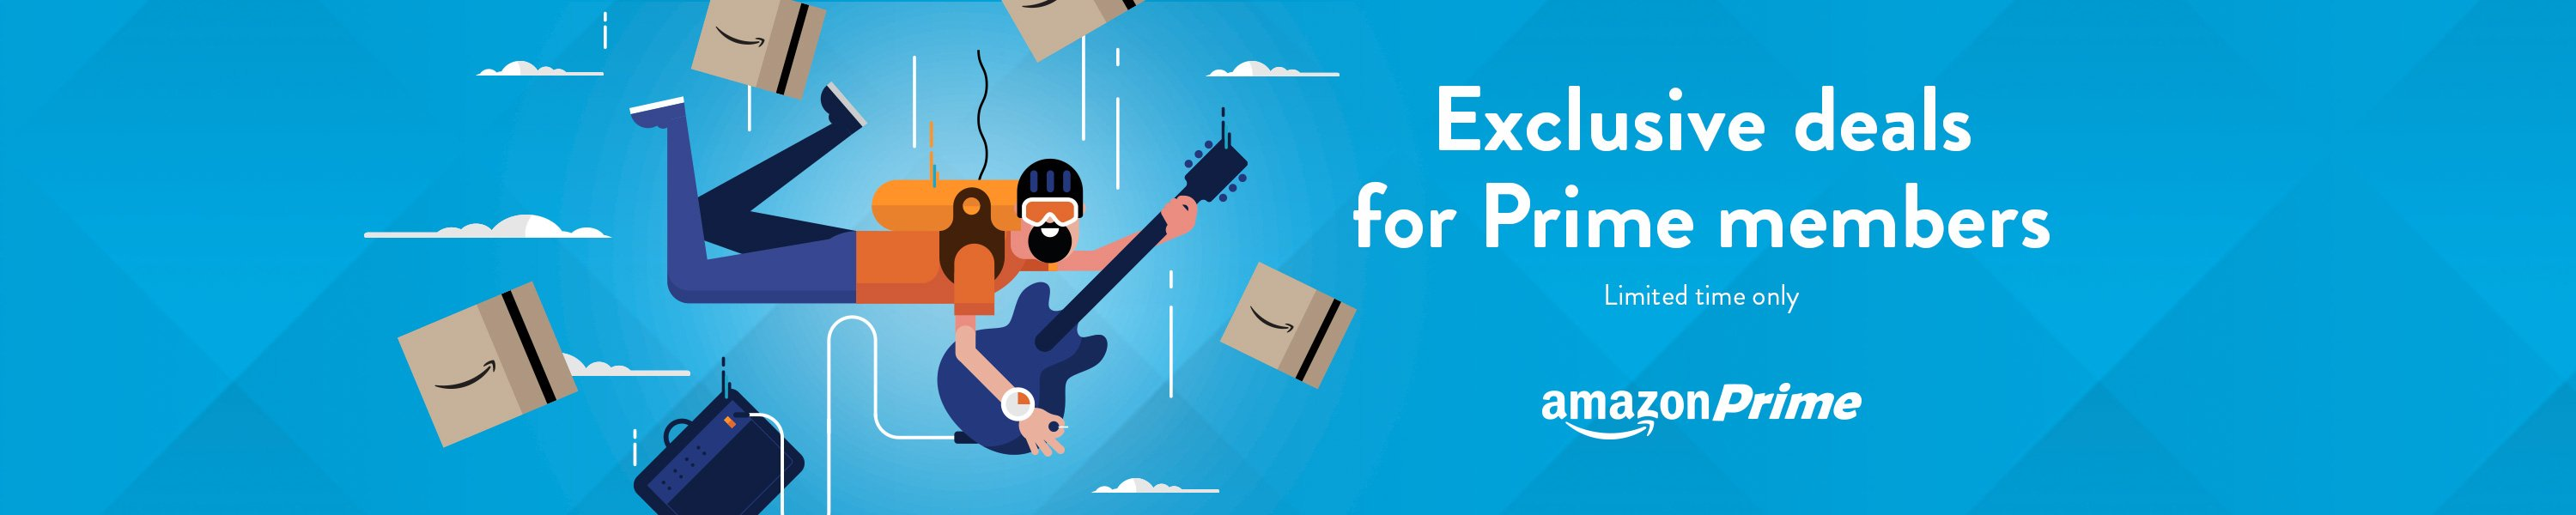 Exclusive deals for Prime members